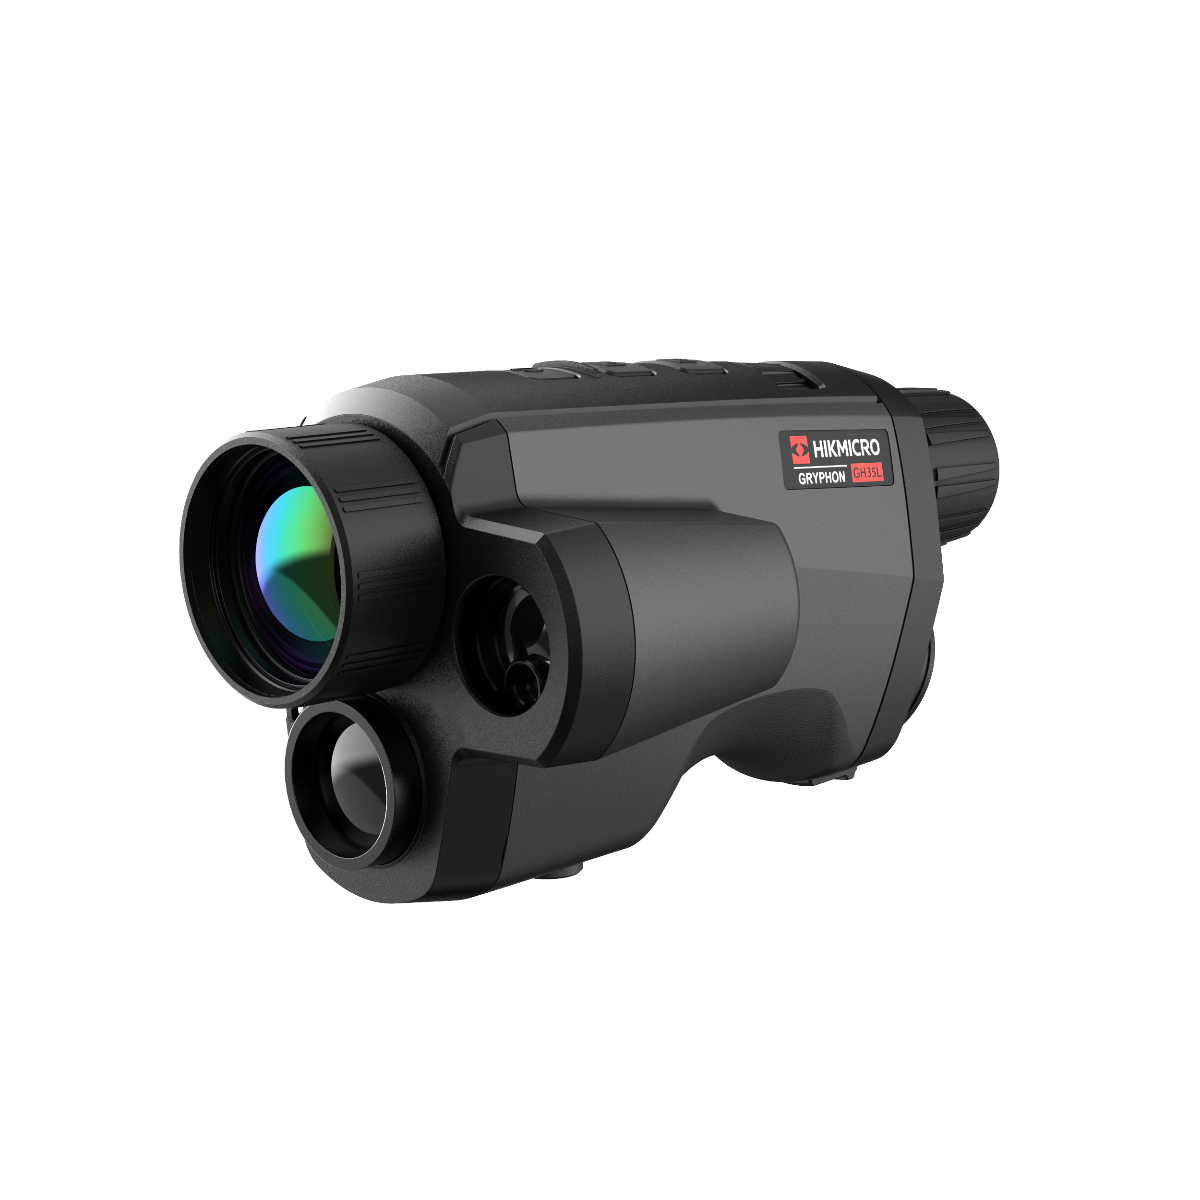 HIKMICRO Gryphon 35mm Fusion Thermal & Optical Monocular With LRF